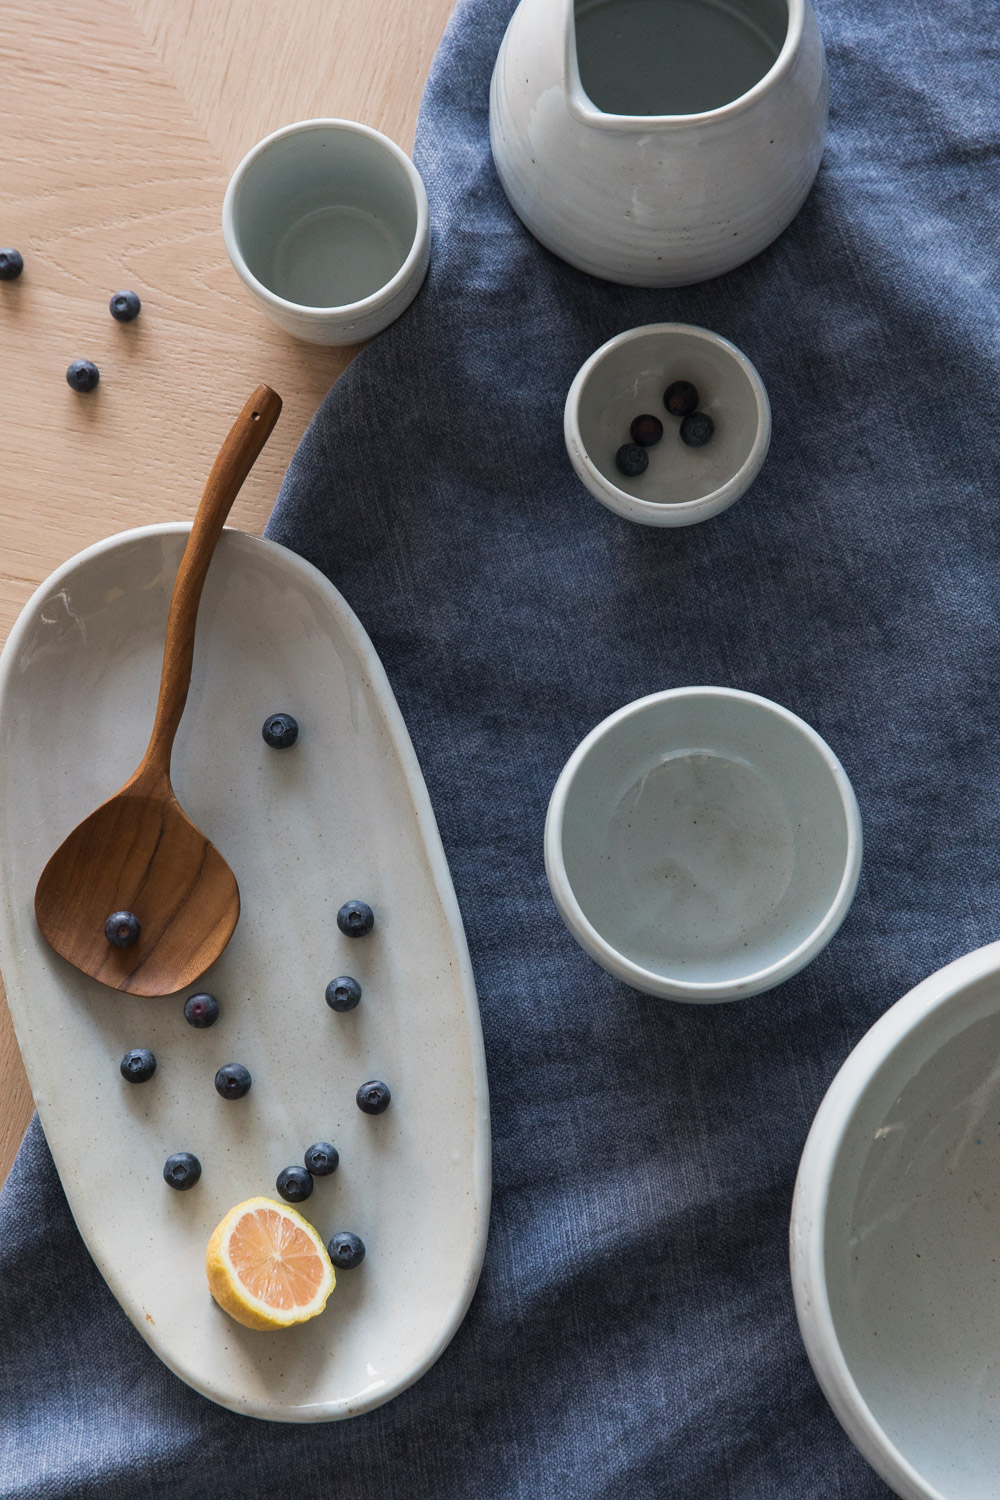 Made Tableware collection